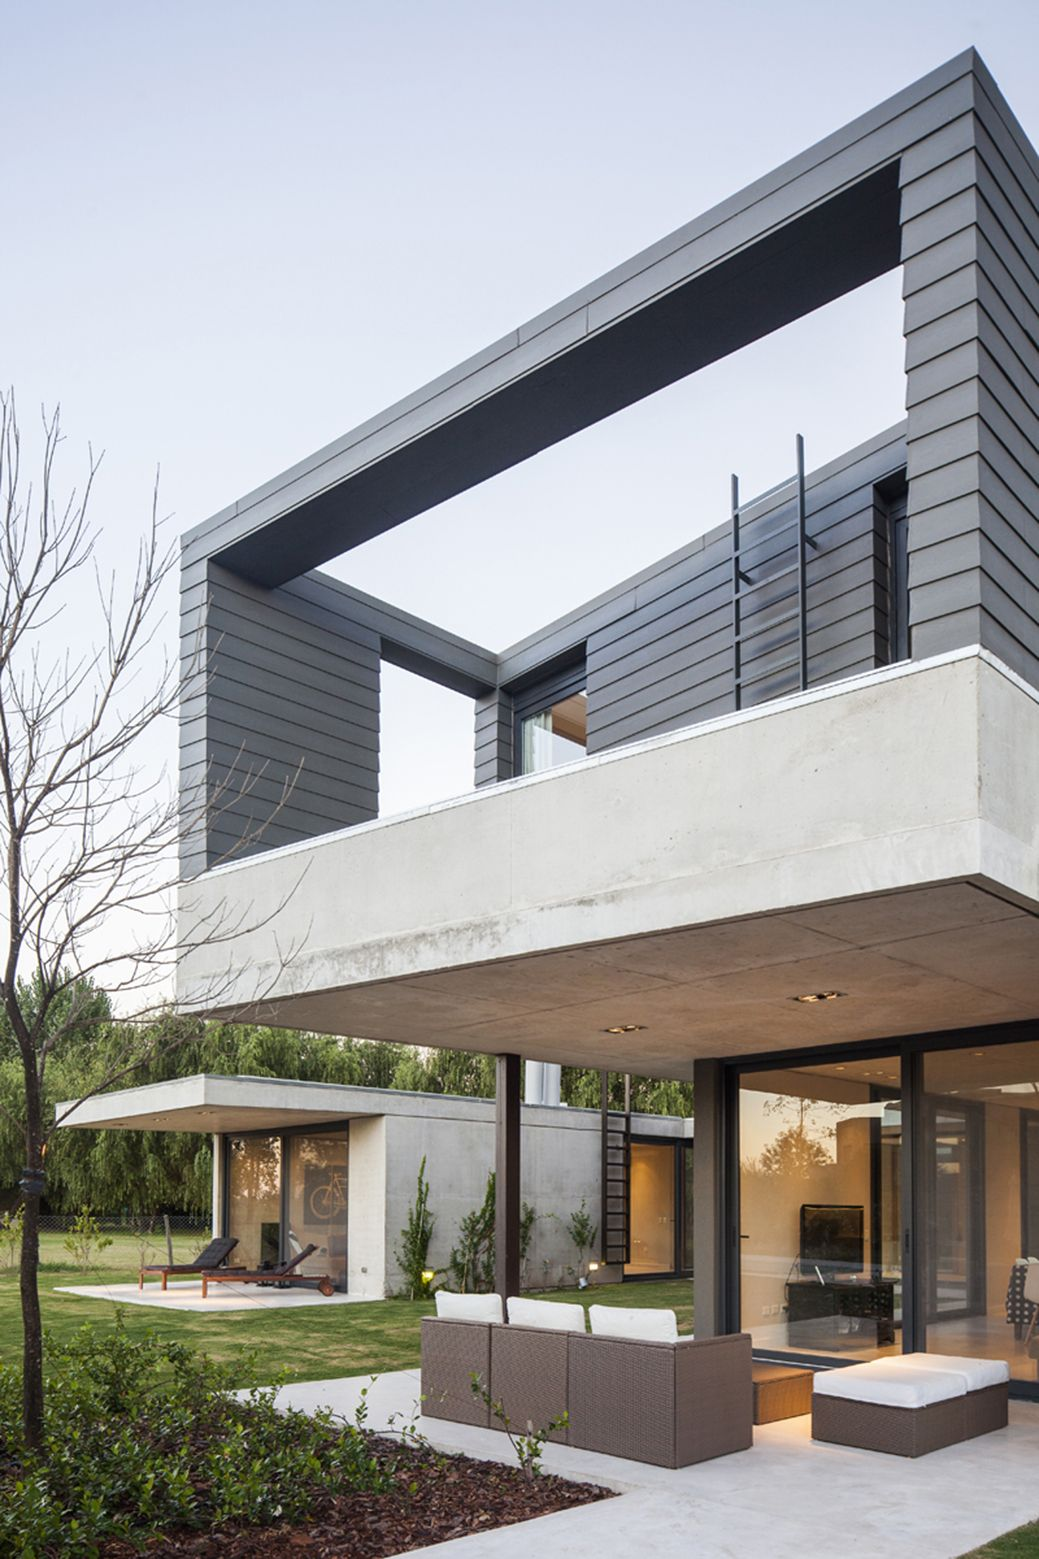 Casa e246 ezequiel amado cattaneo architecture and for Casa home goods